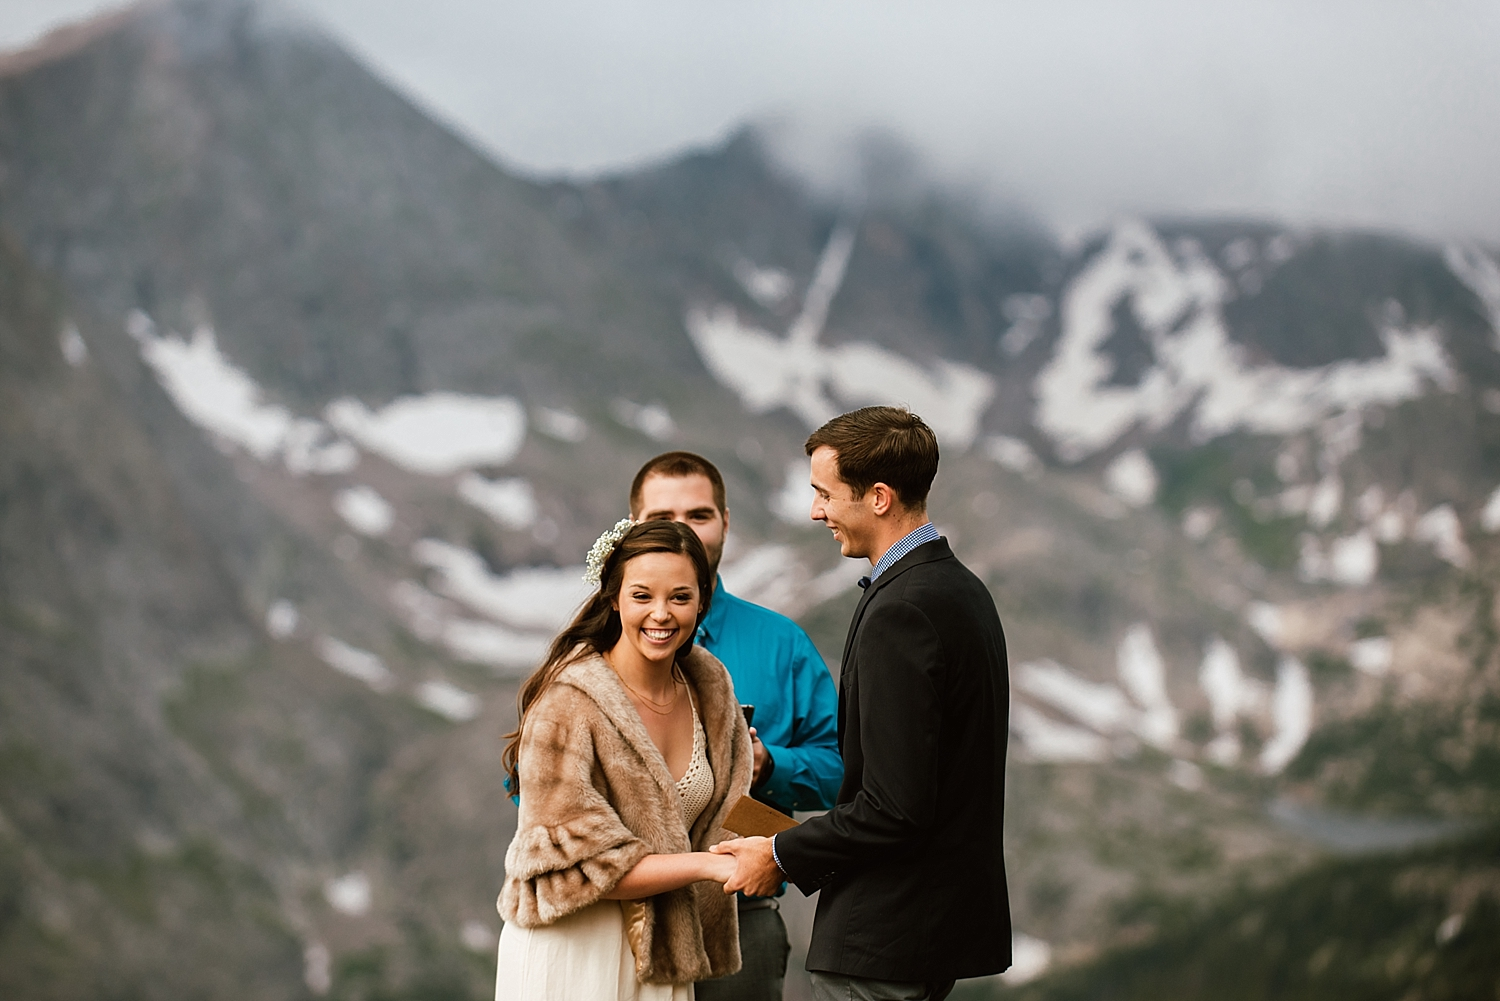 Jessica and Edward's ceremony in Estes Park, Colorado was amazing! I can't wait for mown mountain elopement in Colorado! | Intimate outdoor elopement photos by RMNP wedding photographer, Maddie Mae.